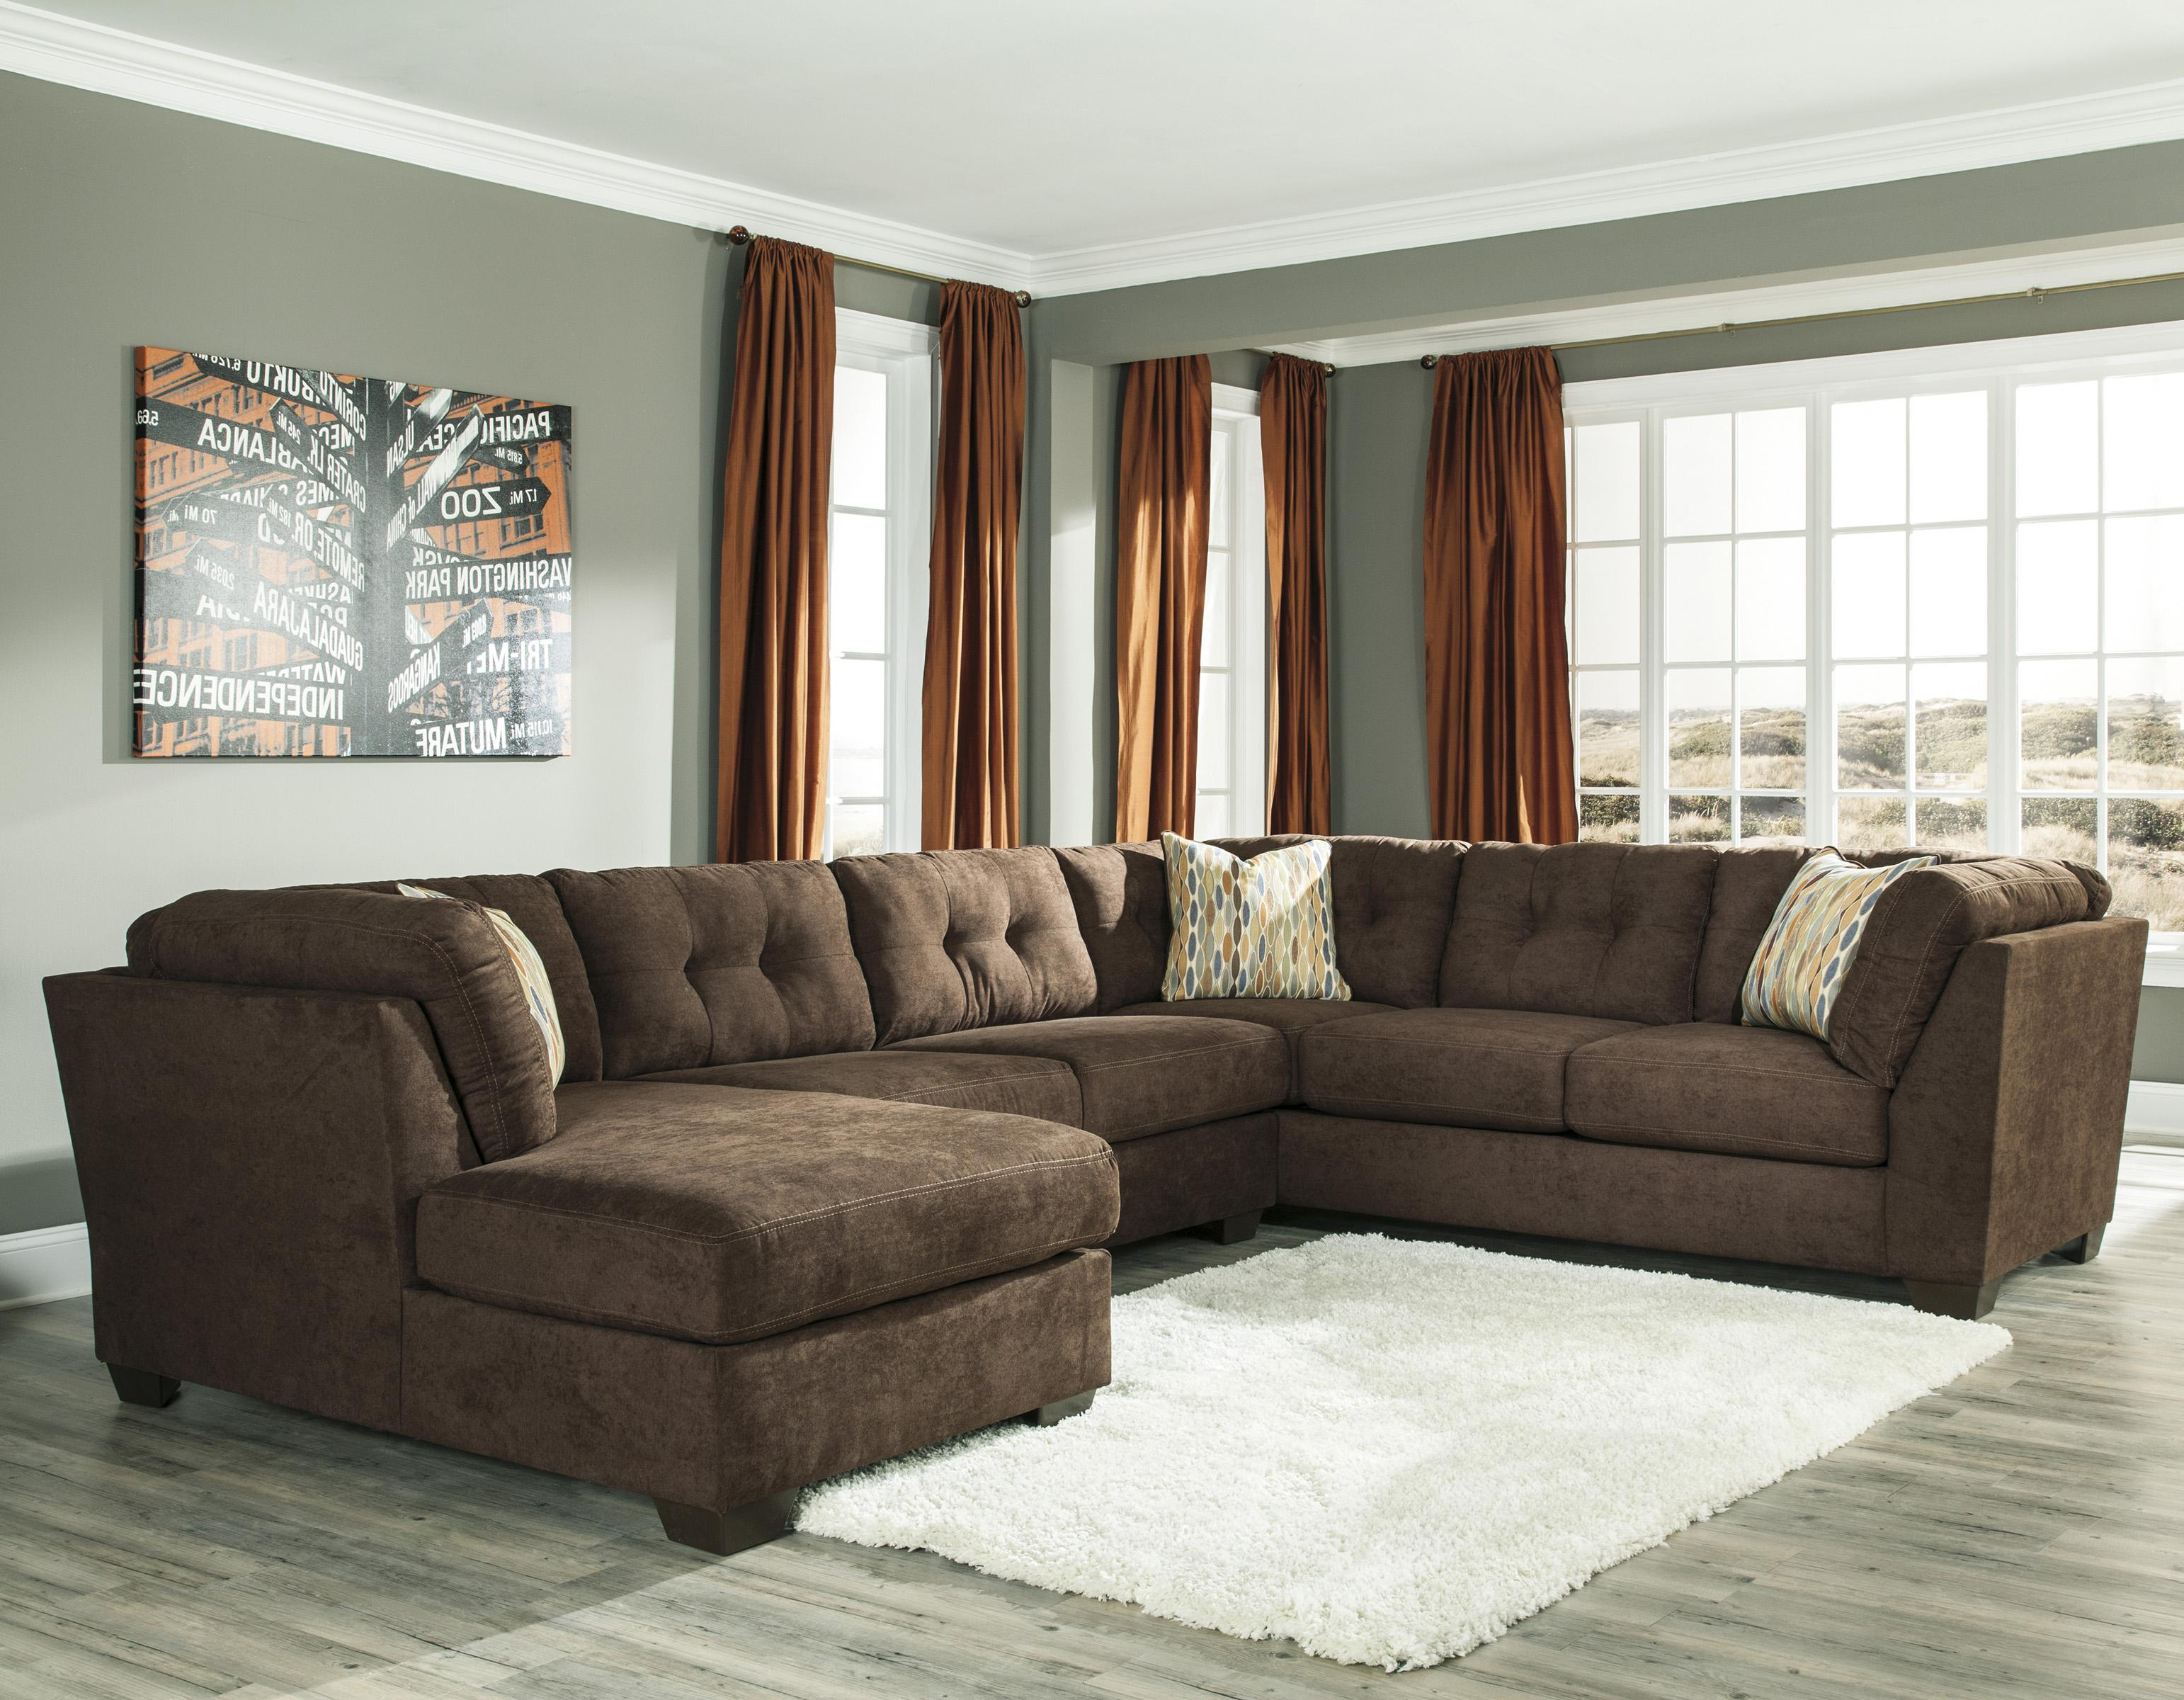 Benchcraft delta city chocolate 3 piece modular for 3 piece chaise sectional